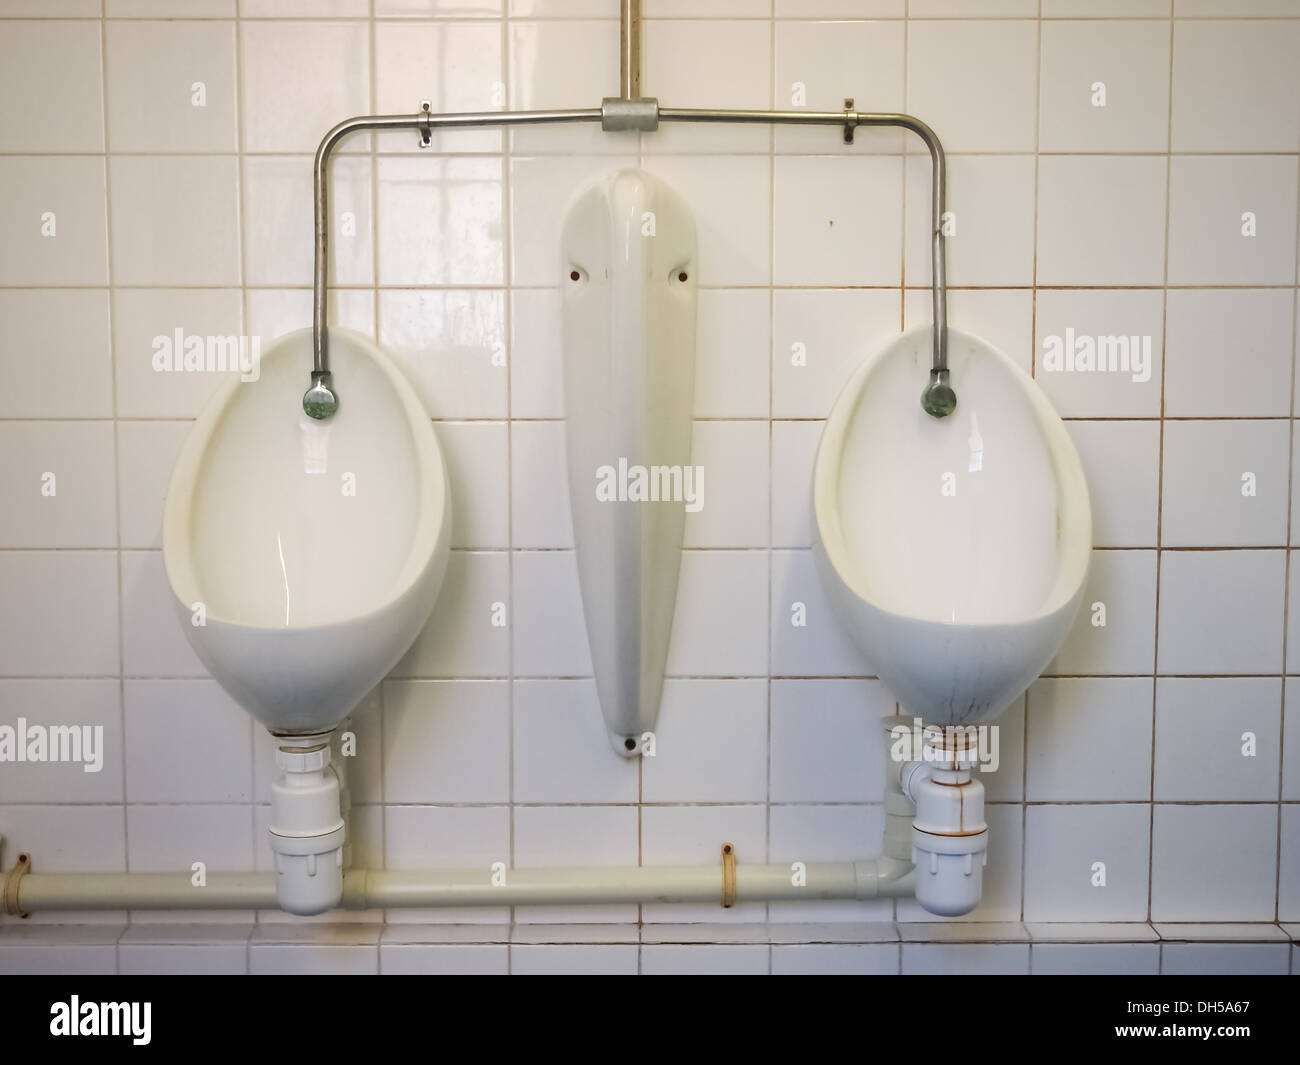 Male Urinals In A Public Bathroom With An Automated Flush System